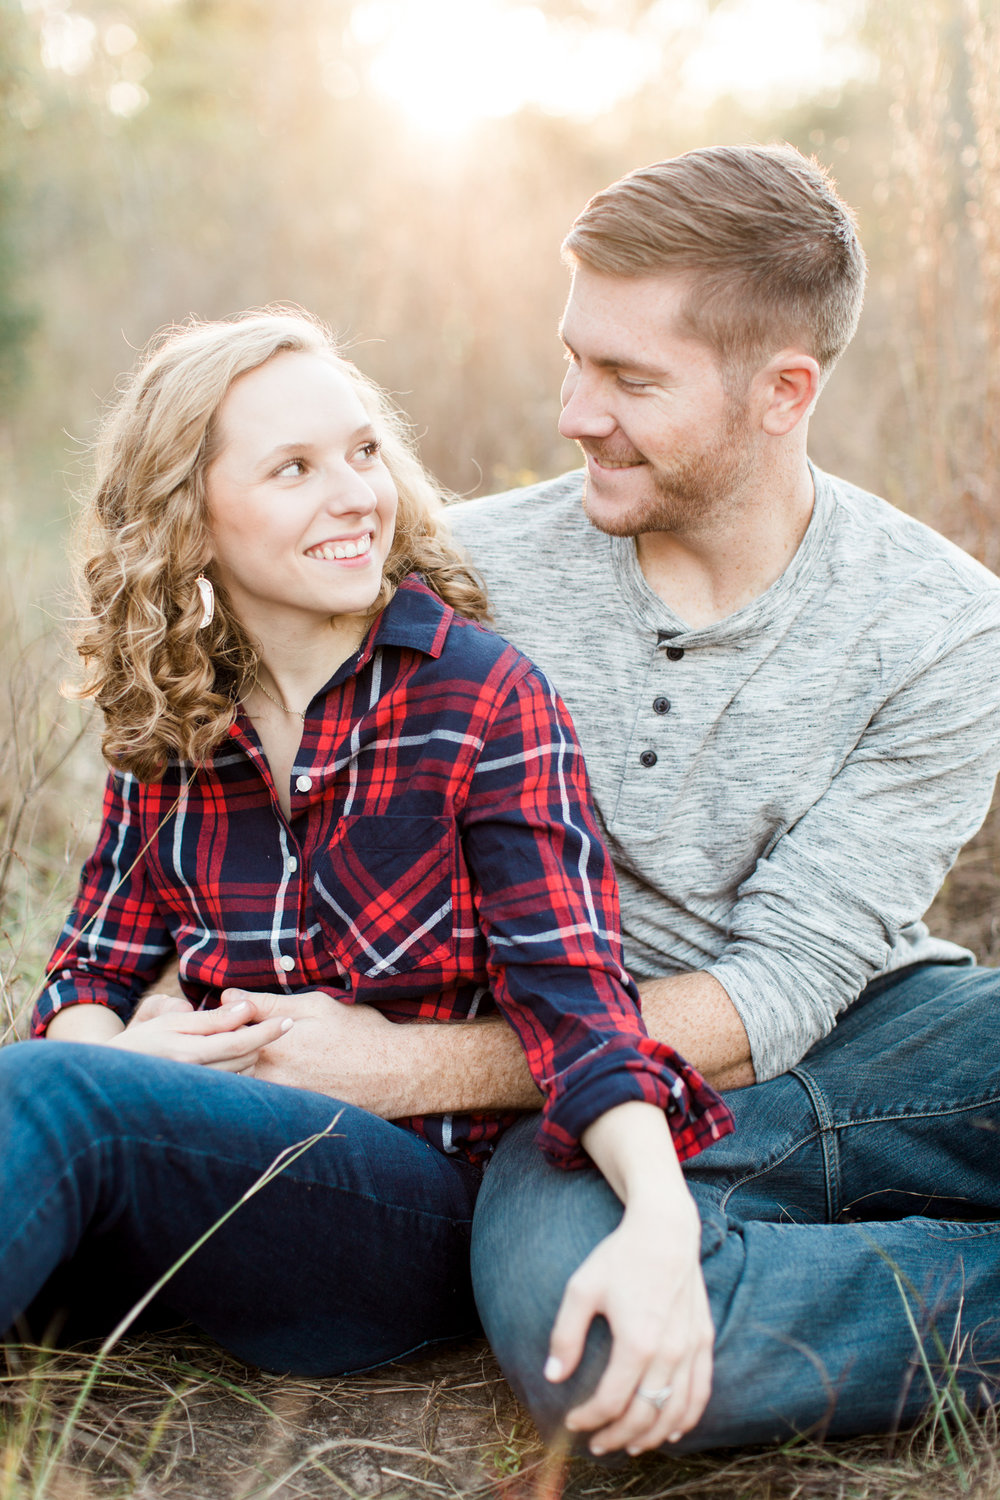 e8828-collegestationengagementsession-15.jpg